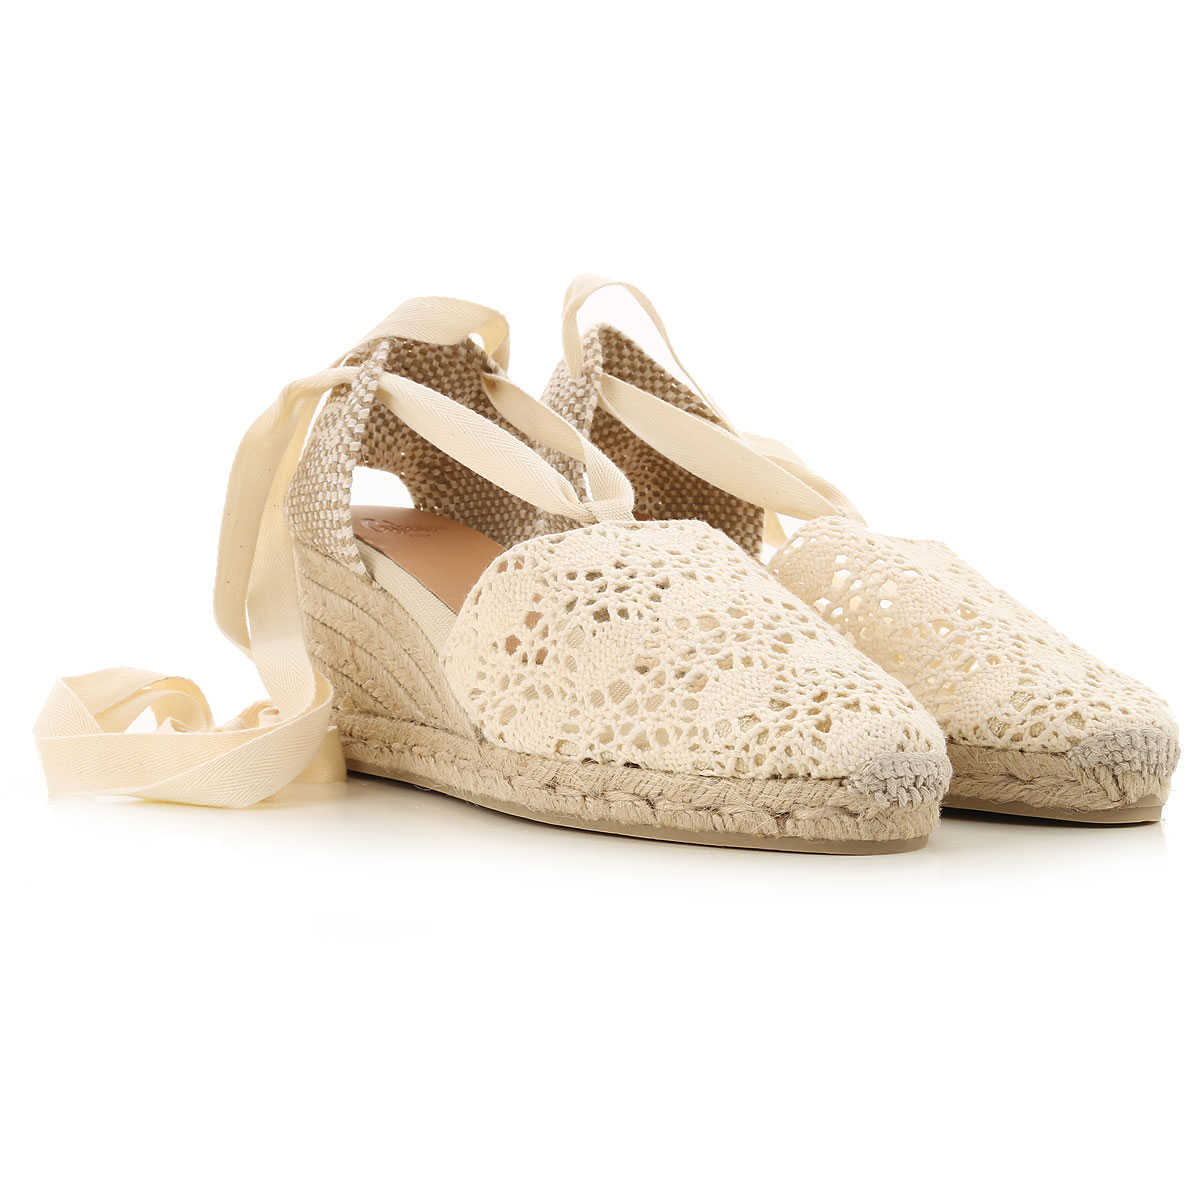 Castaner Wedges for Women On Sale White DK - GOOFASH - Womens HOUSE SHOES